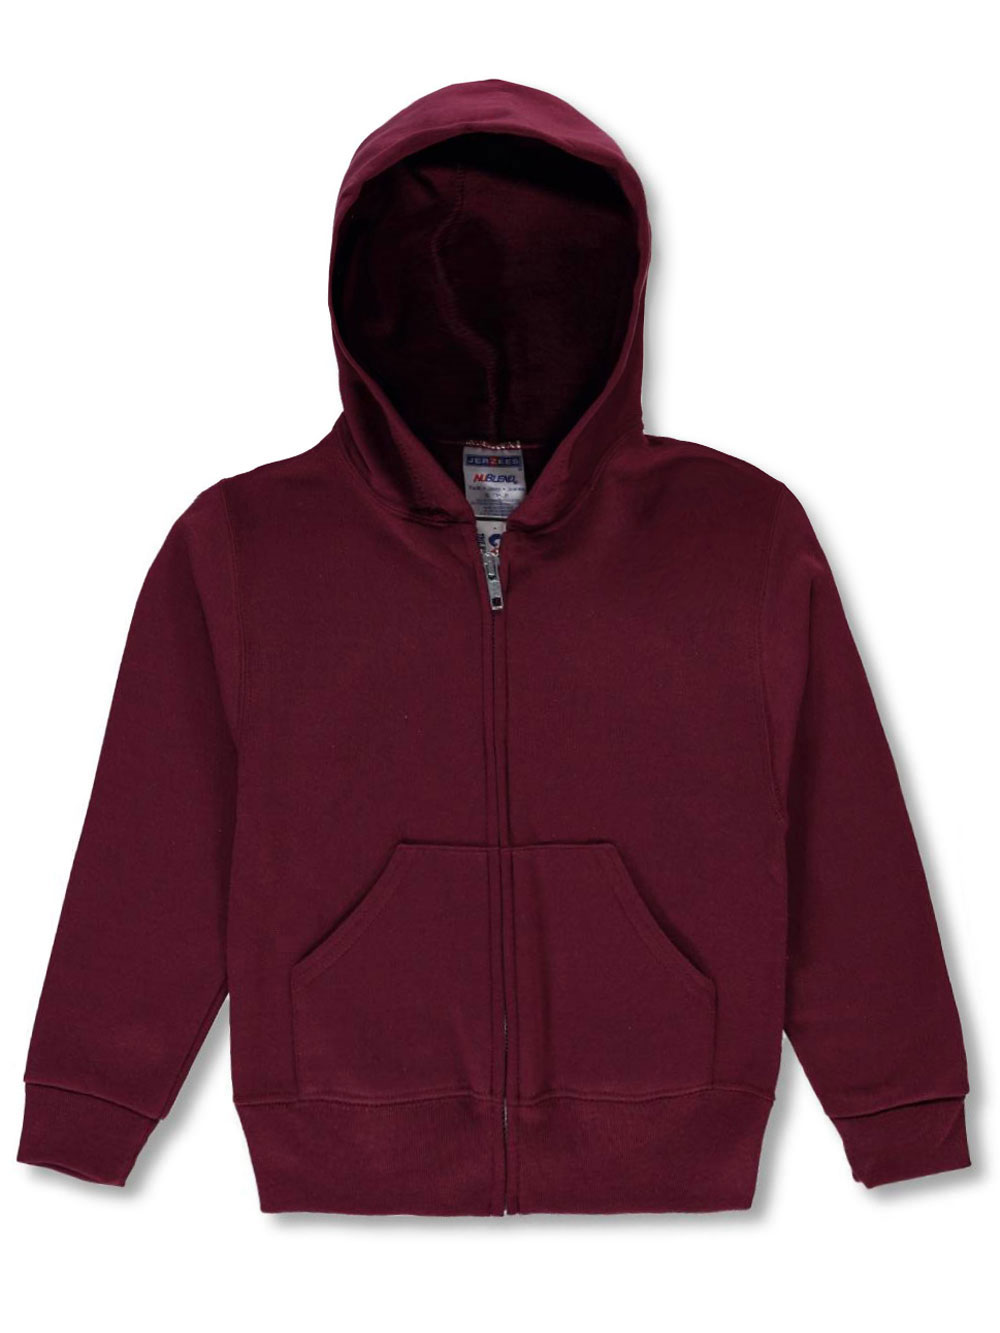 Size 6 Hoodies for Boys